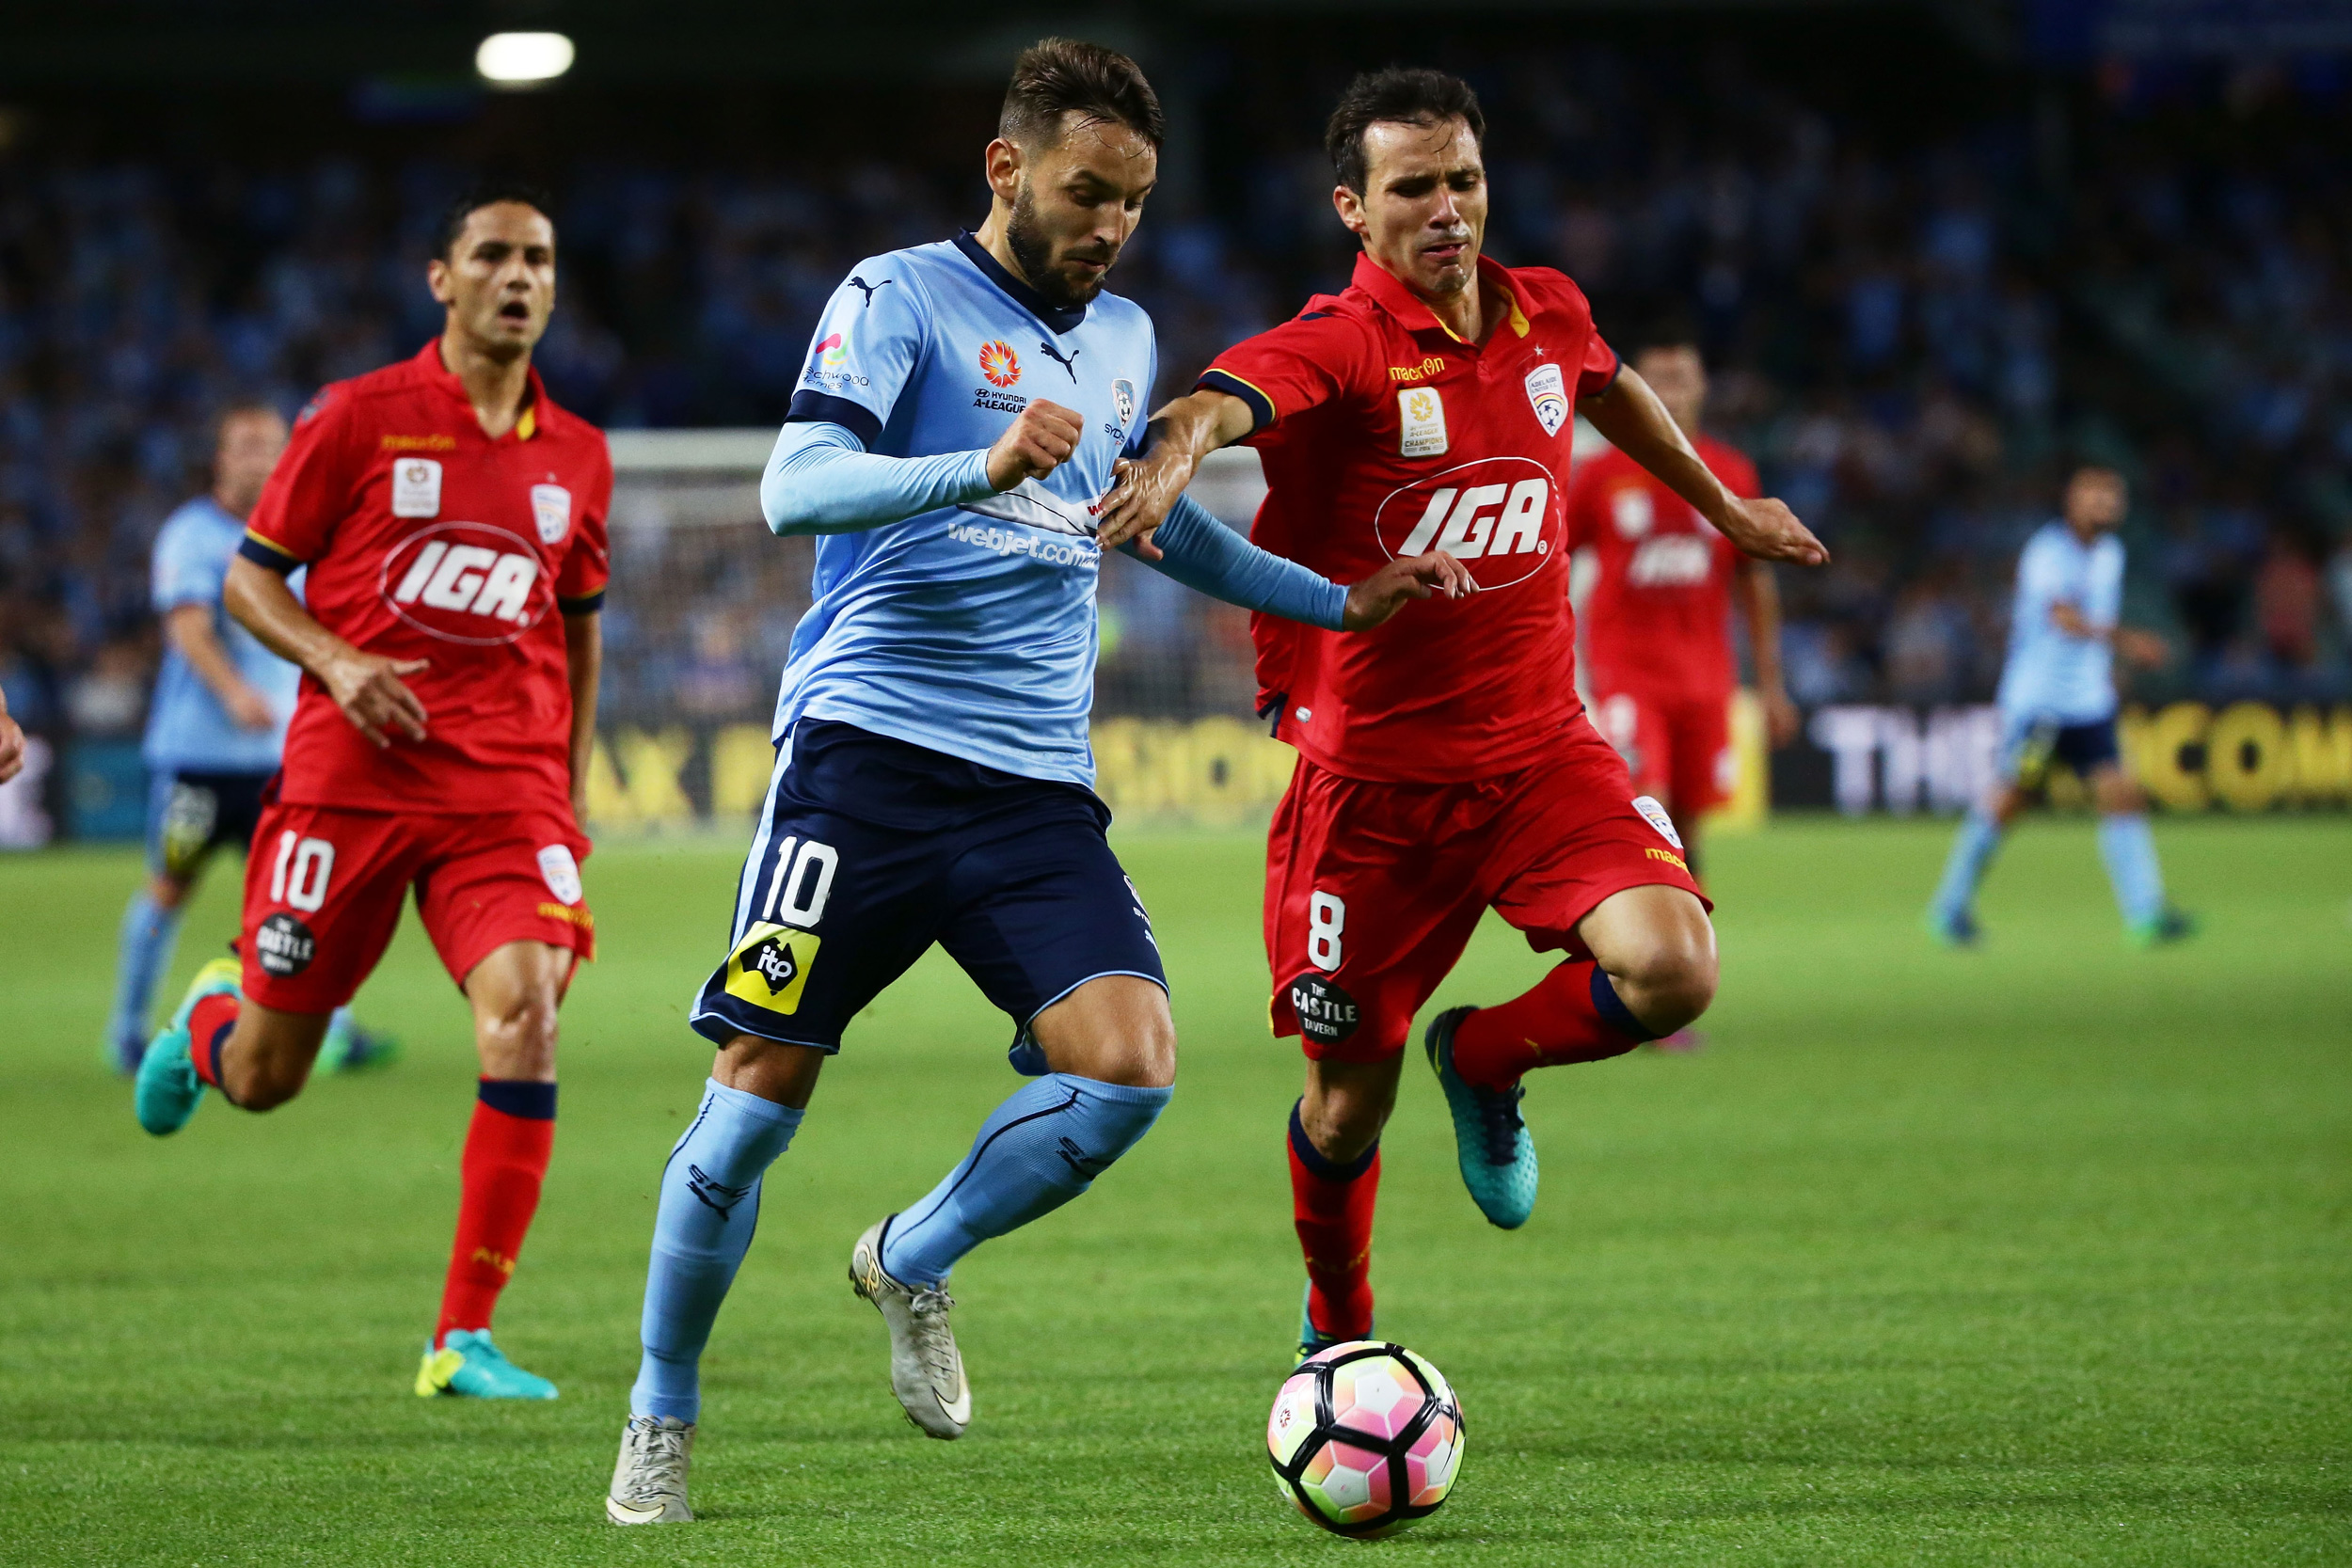 Sydney FC vs Adelaide United